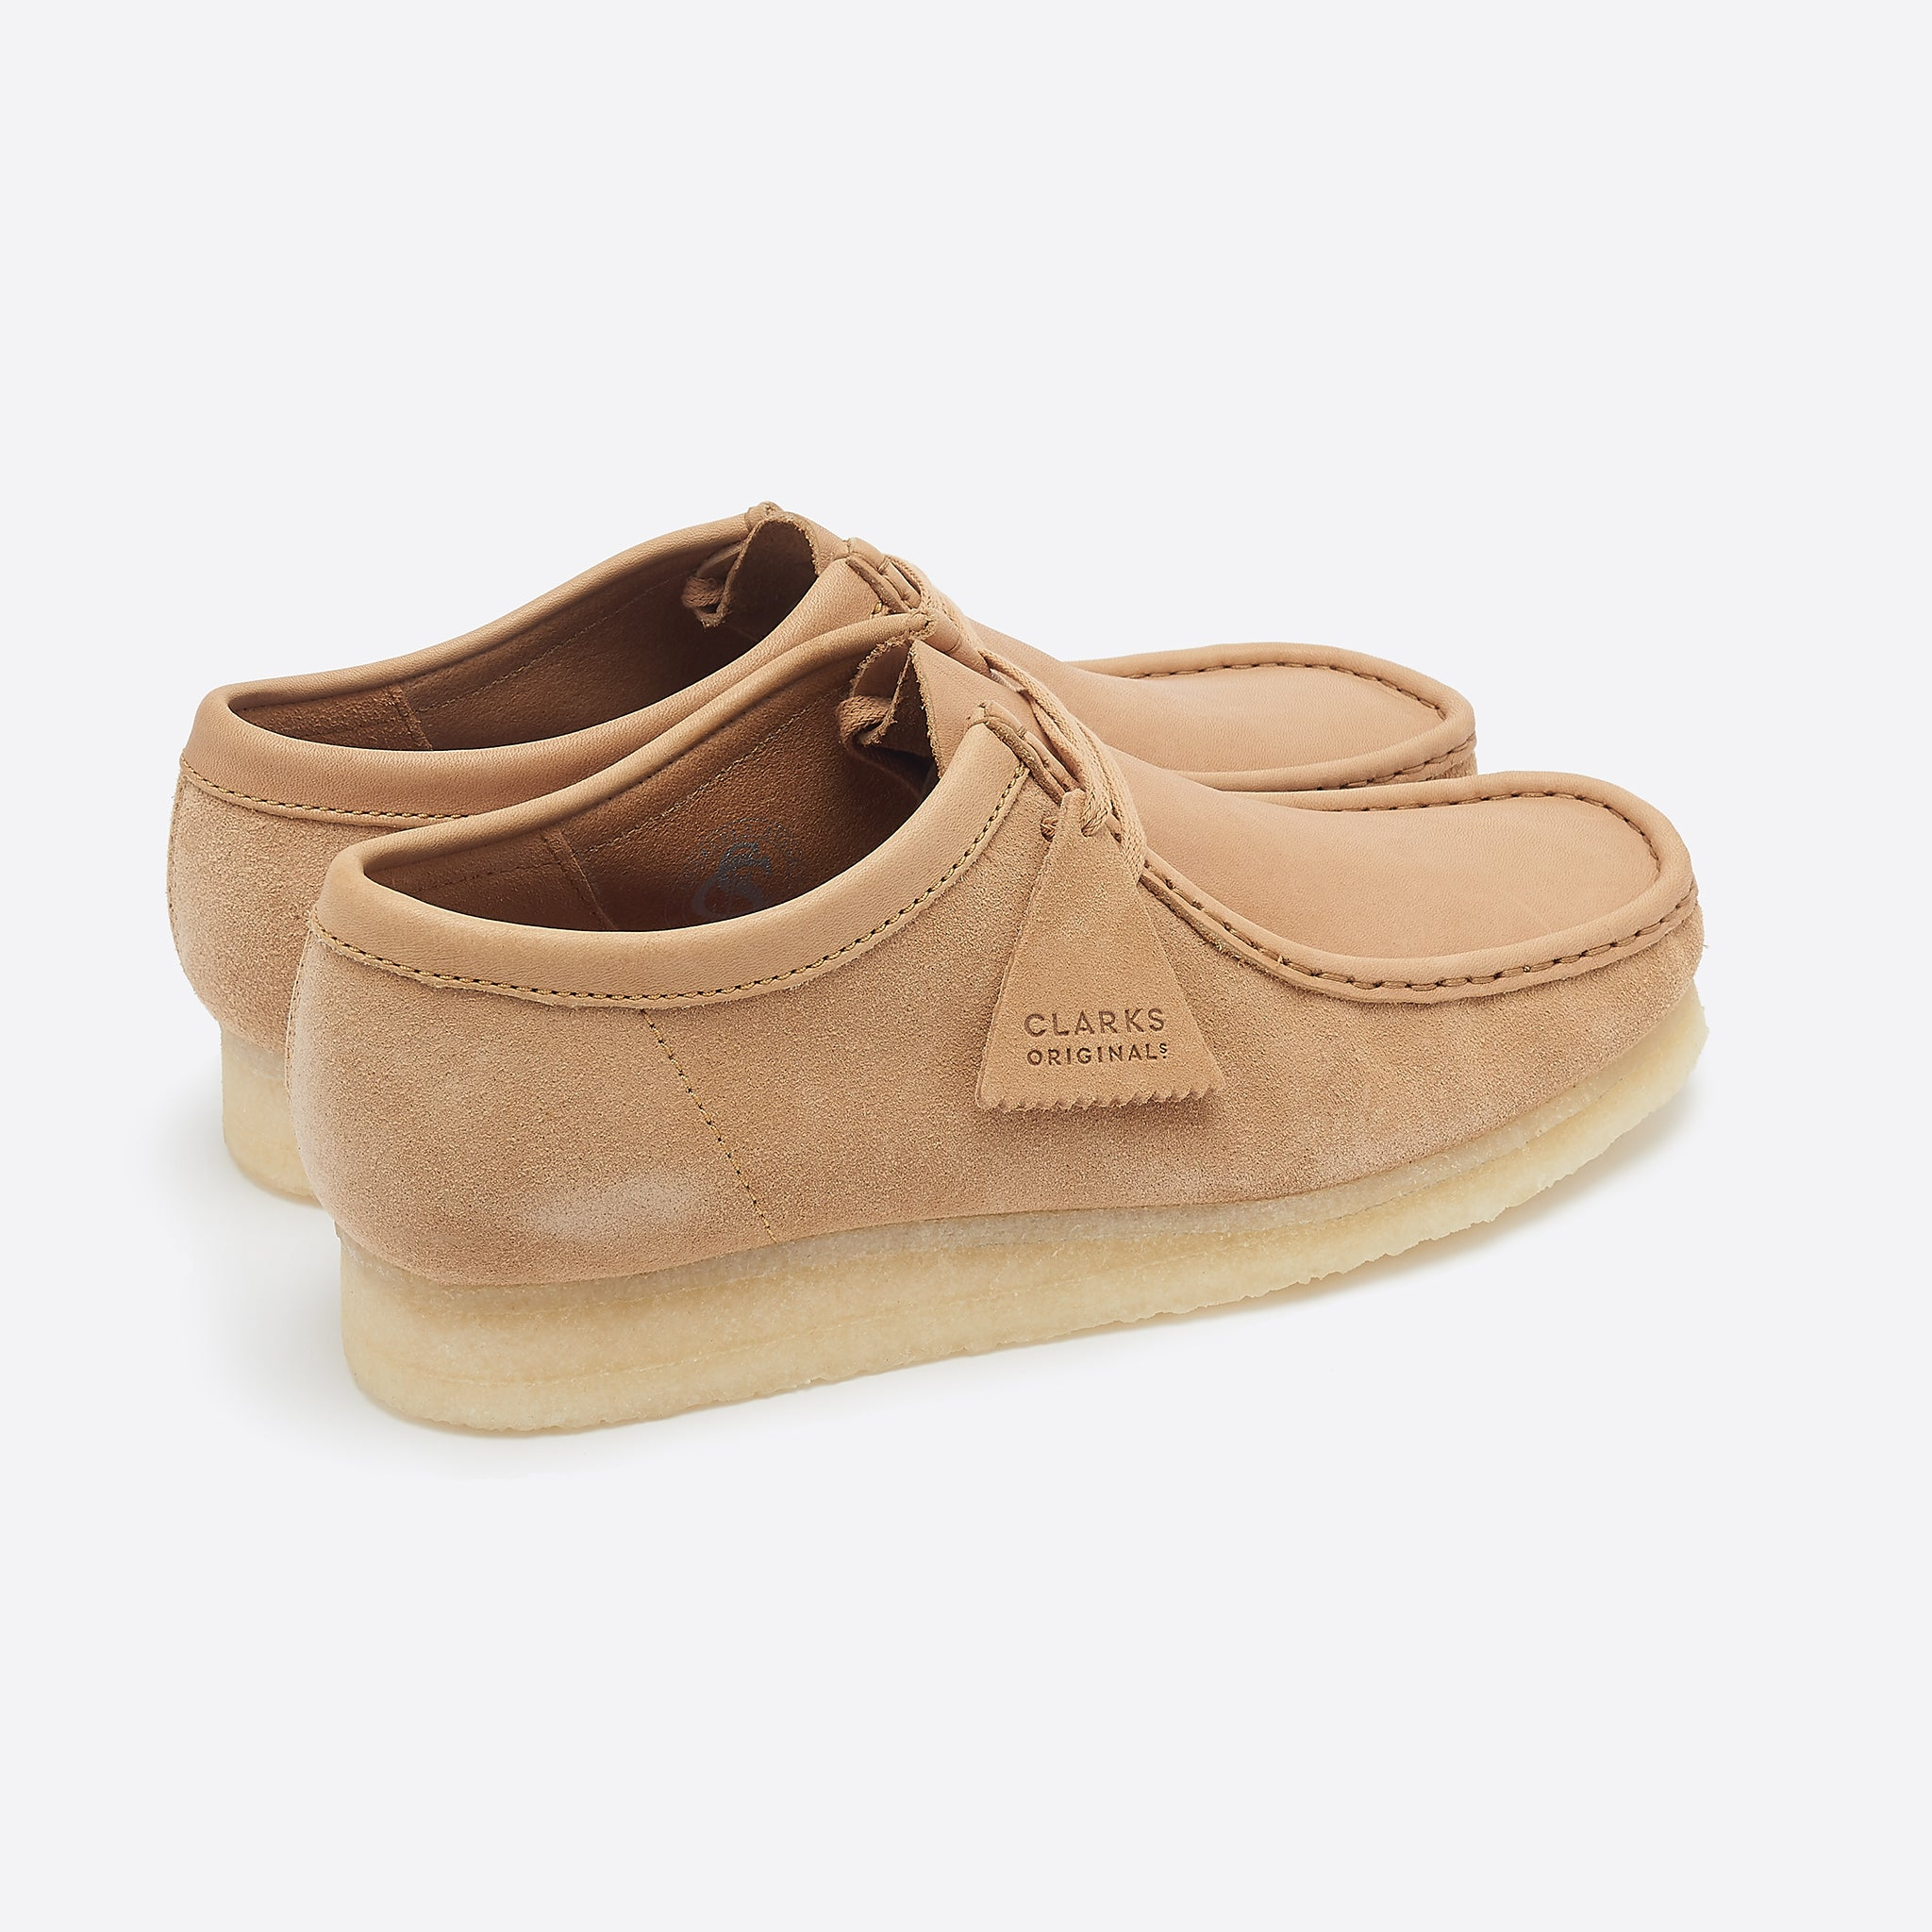 Clarks Originals Wallabee in Light Tan Combination